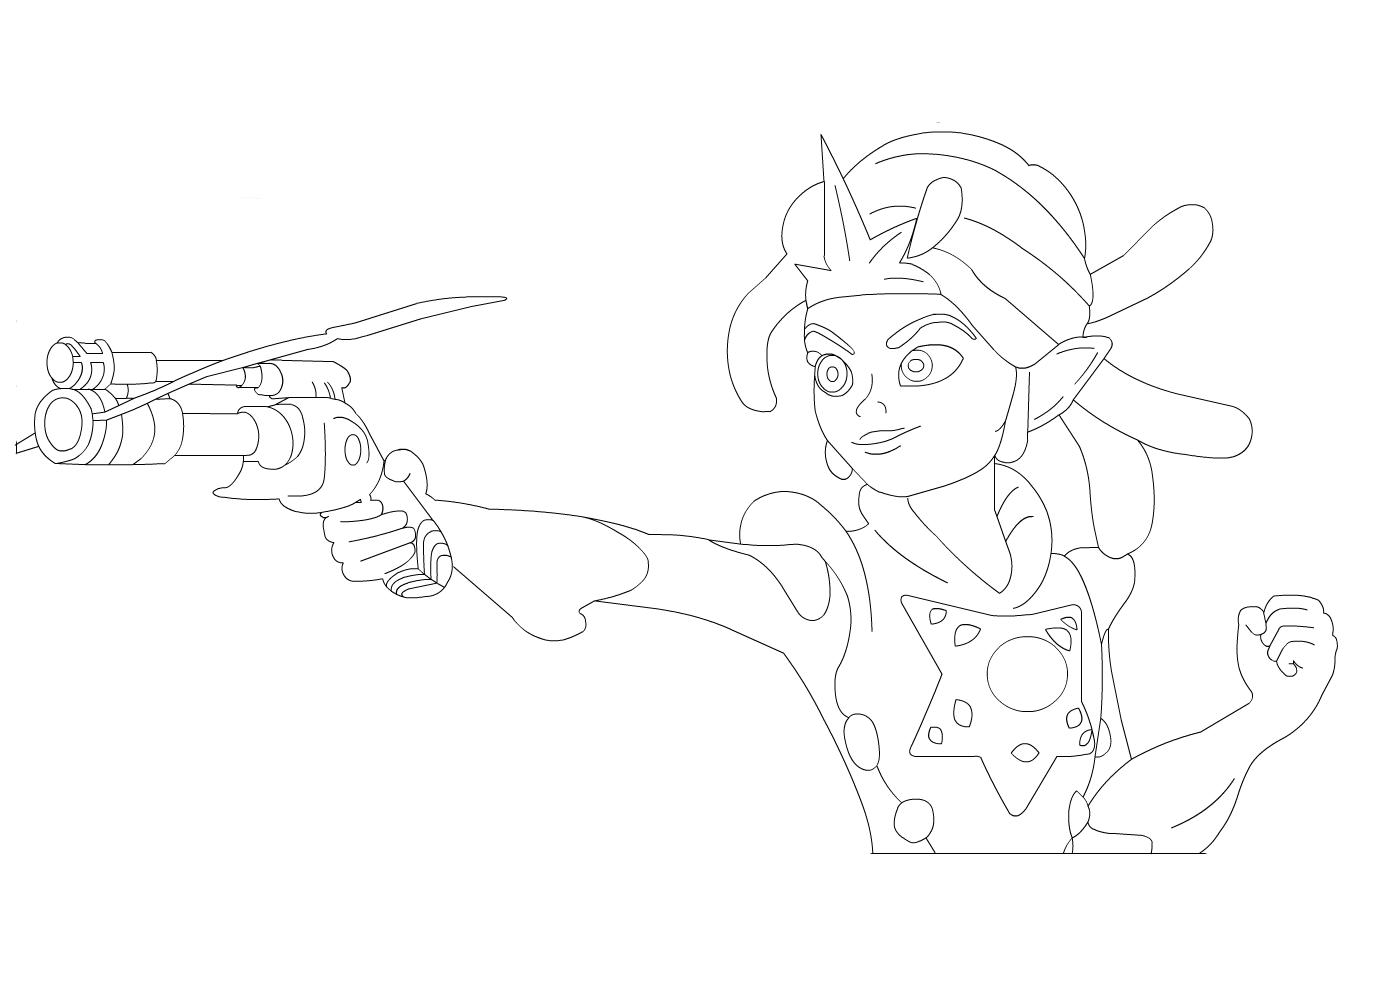 Zak Storm coloring pages to download